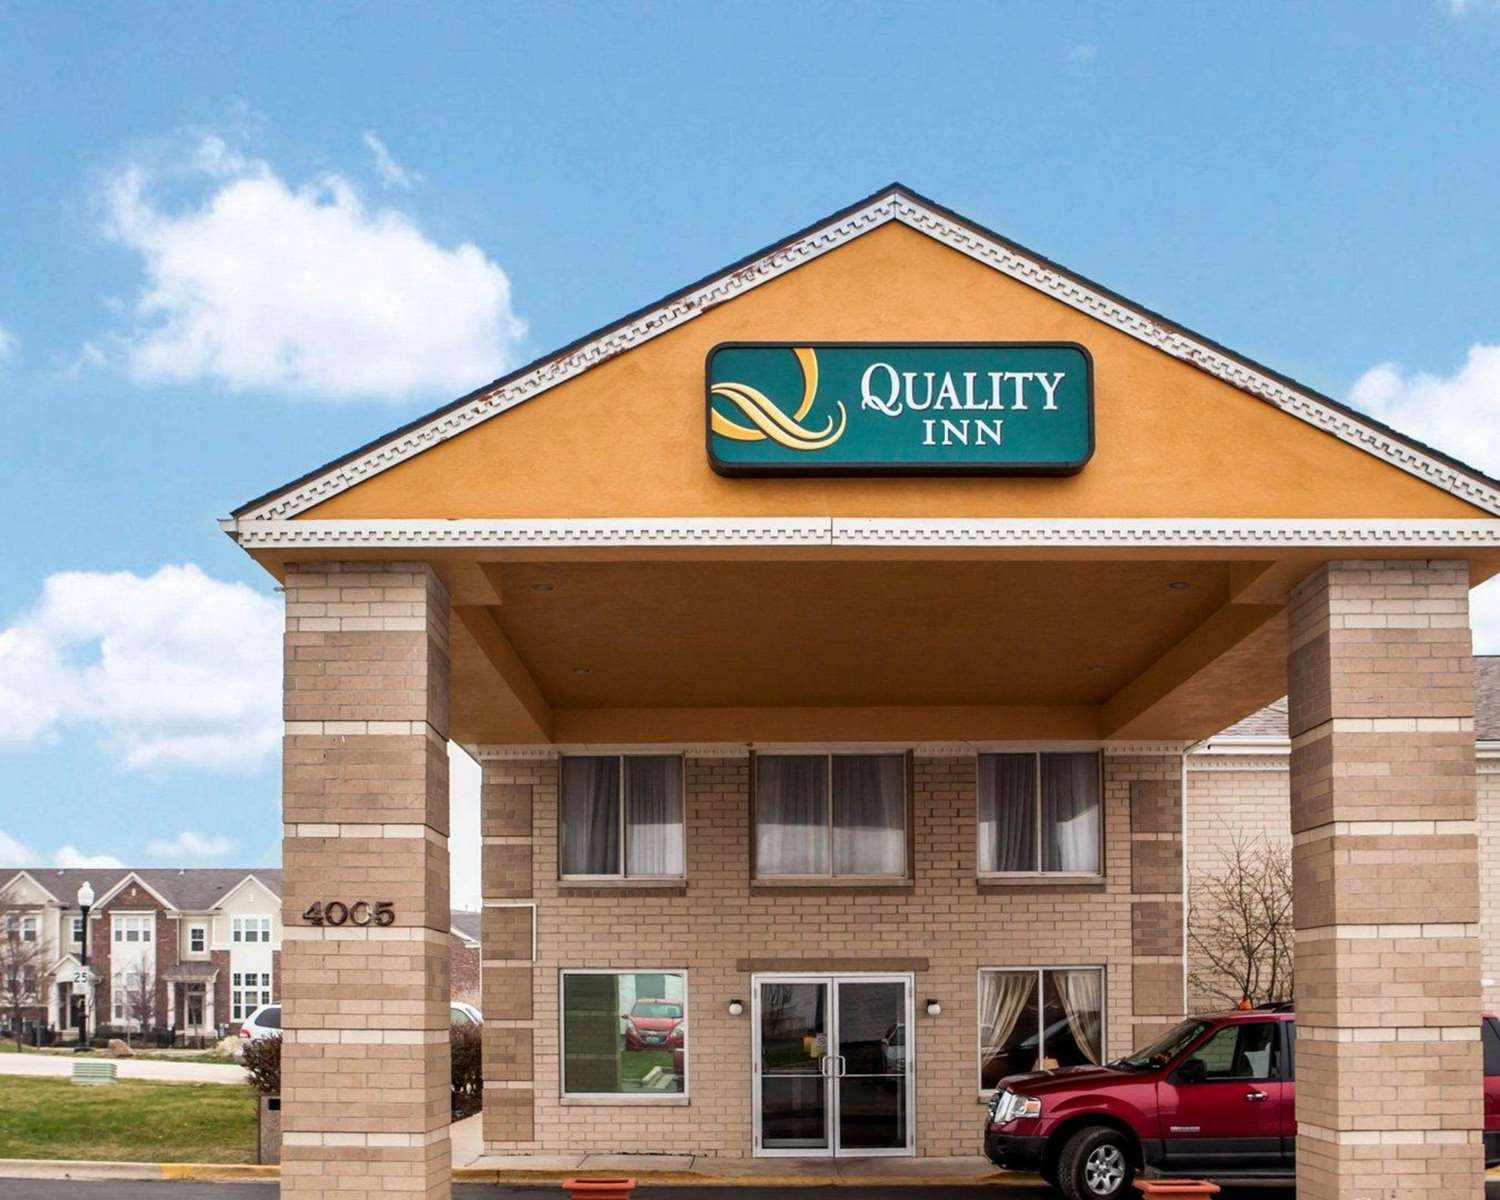 Exterior view - Quality Inn Aurora